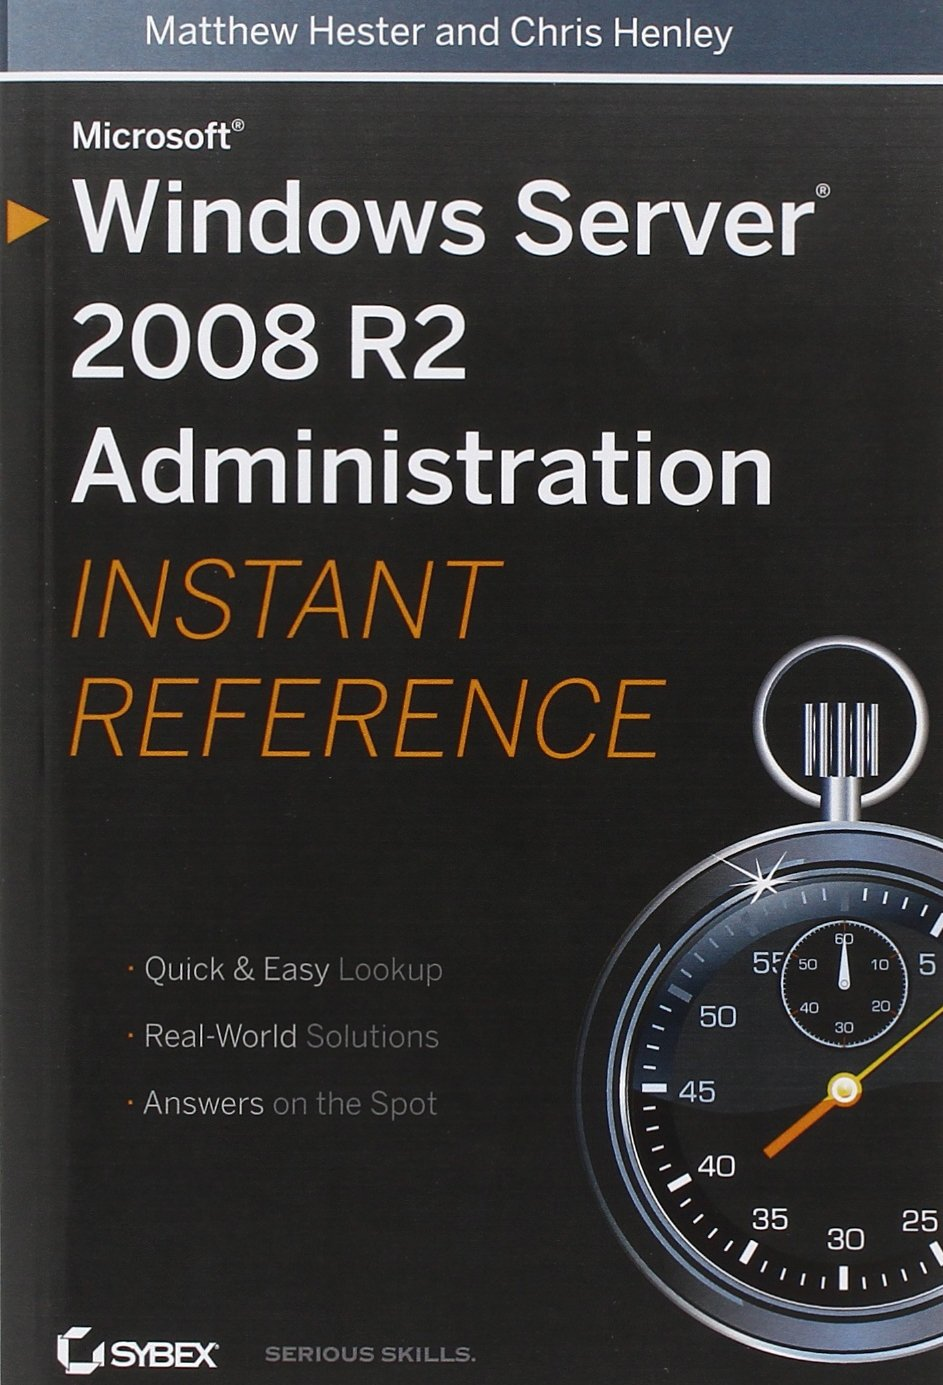 Microsoft Windows Server 2008 R2 Administration Instant Reference free download